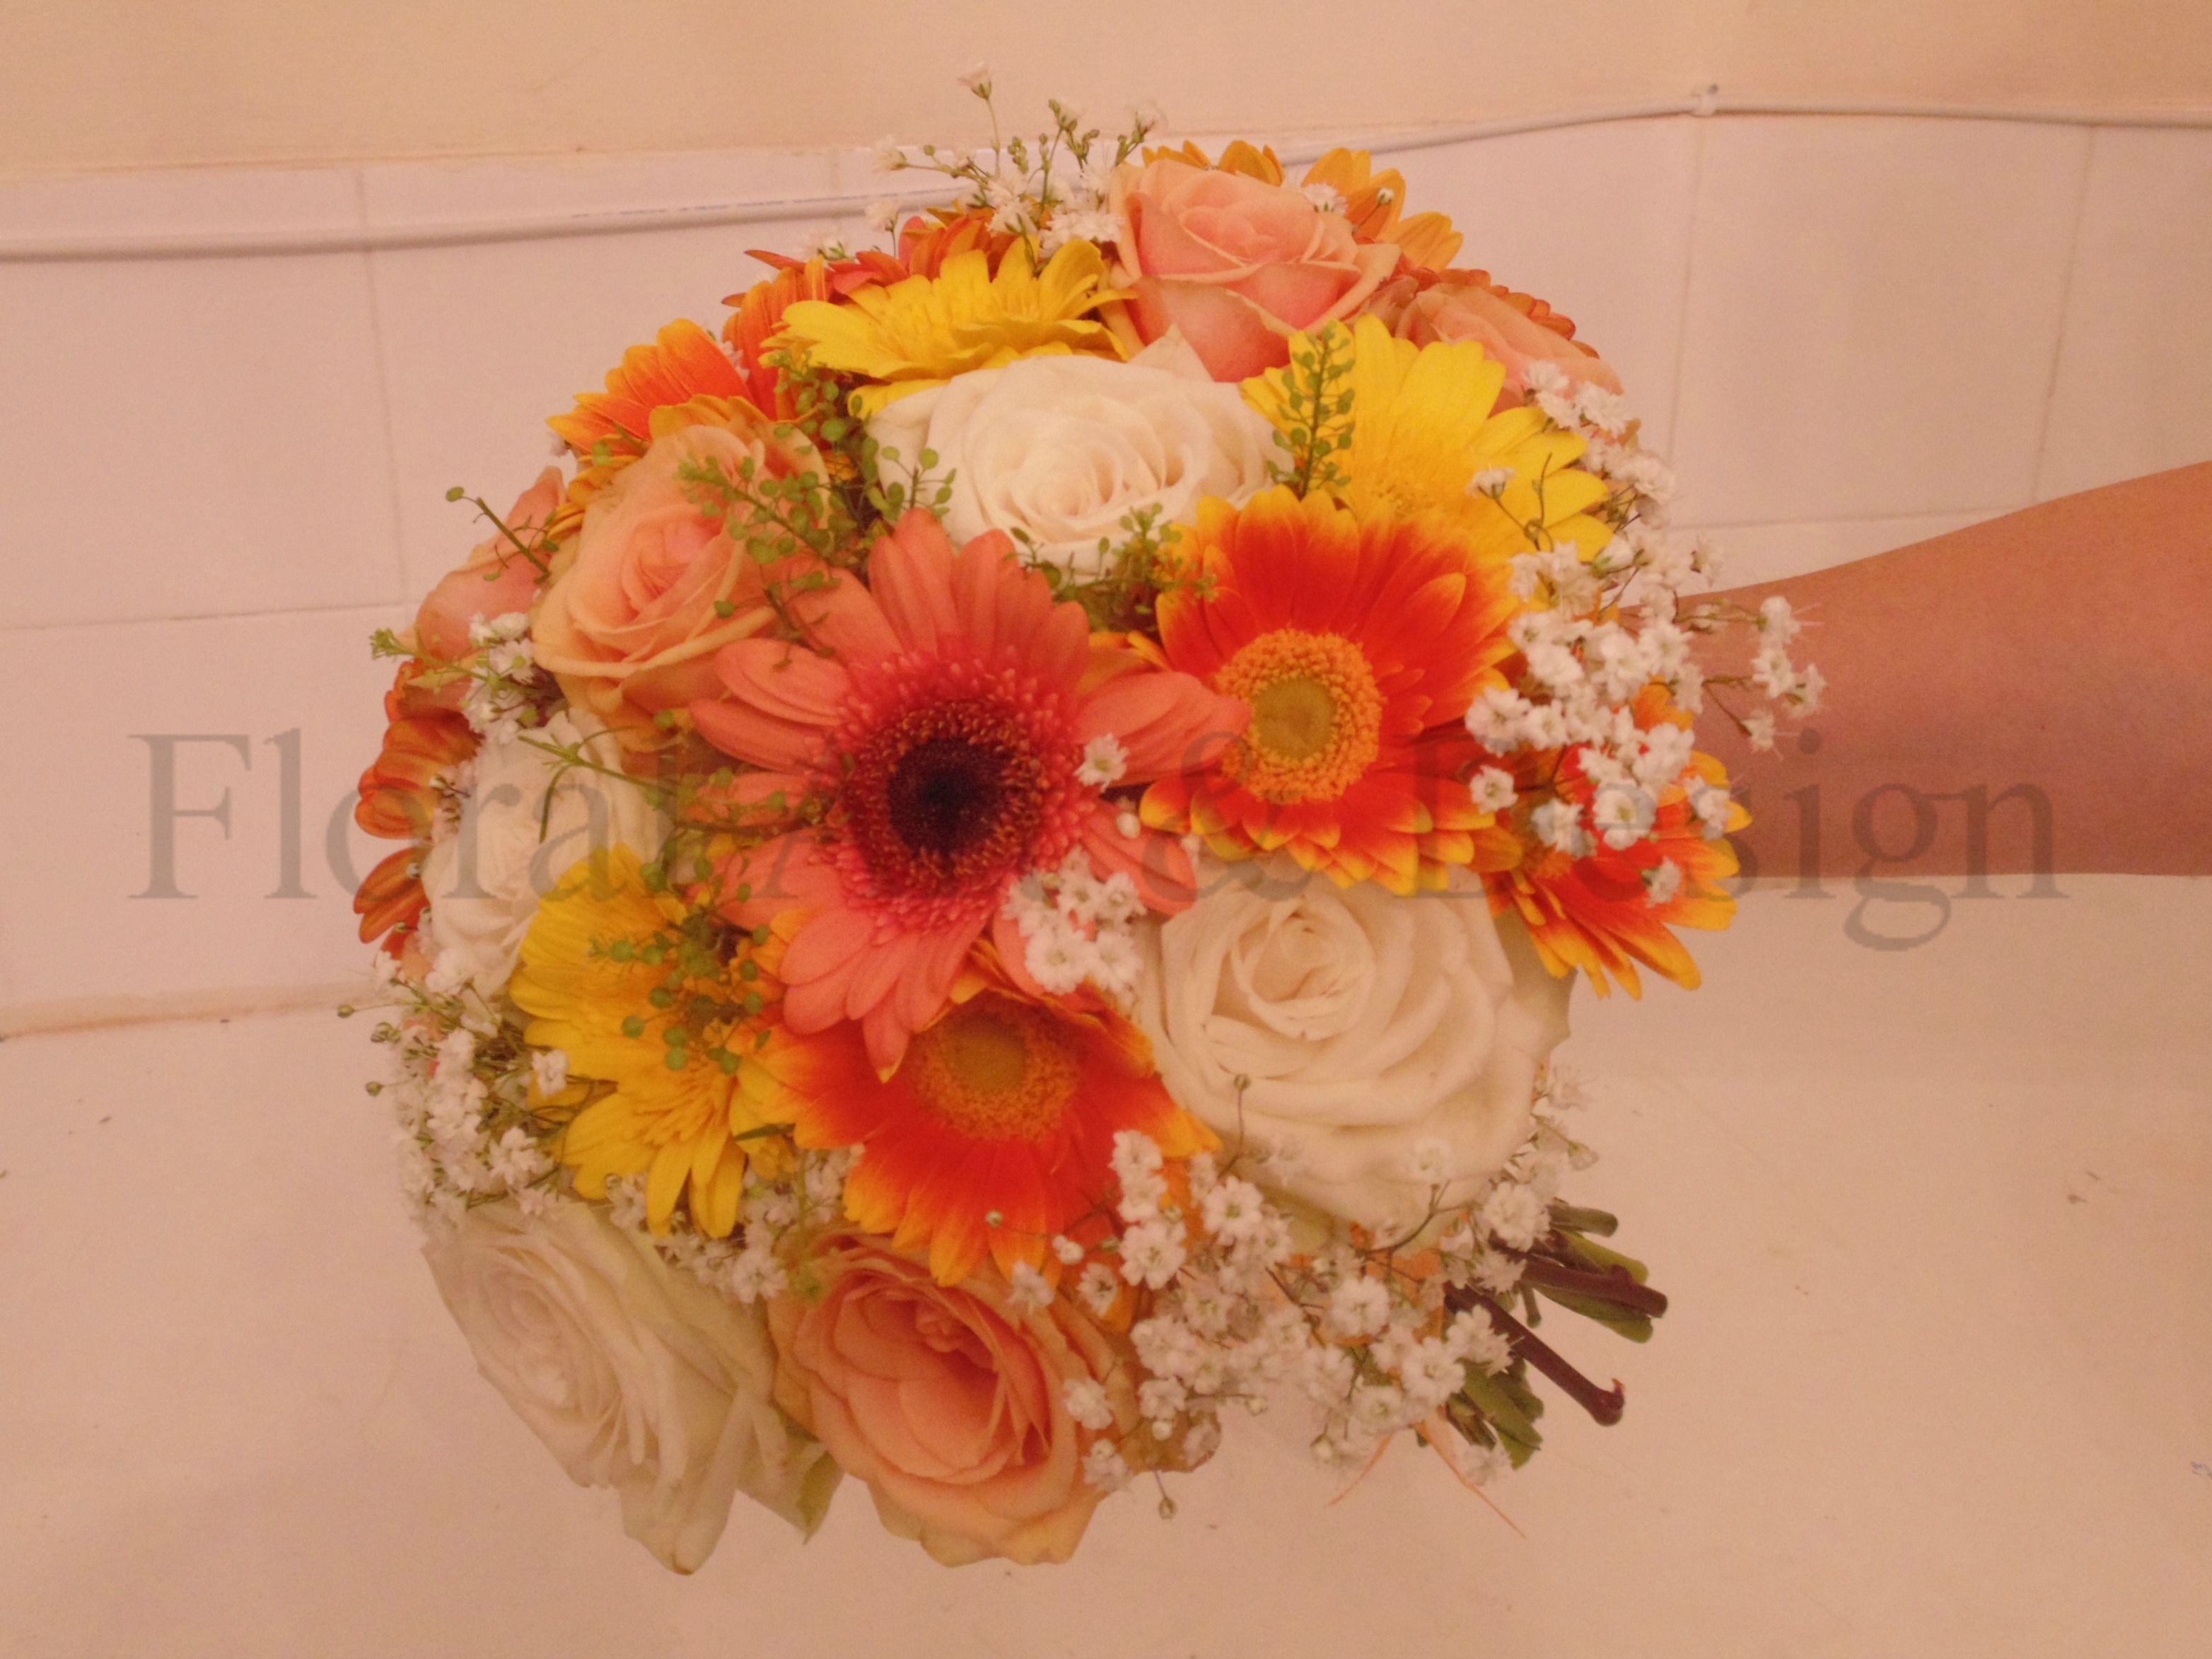 Hand Tied Bridal Bouquet Of Peach And Ivory Roses, Gypsophila